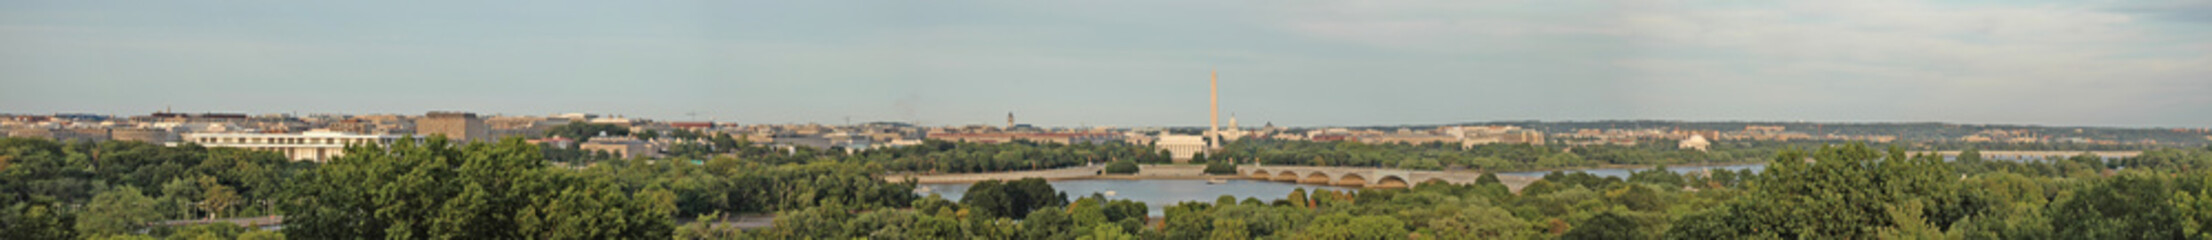 Washington, DC Skyline